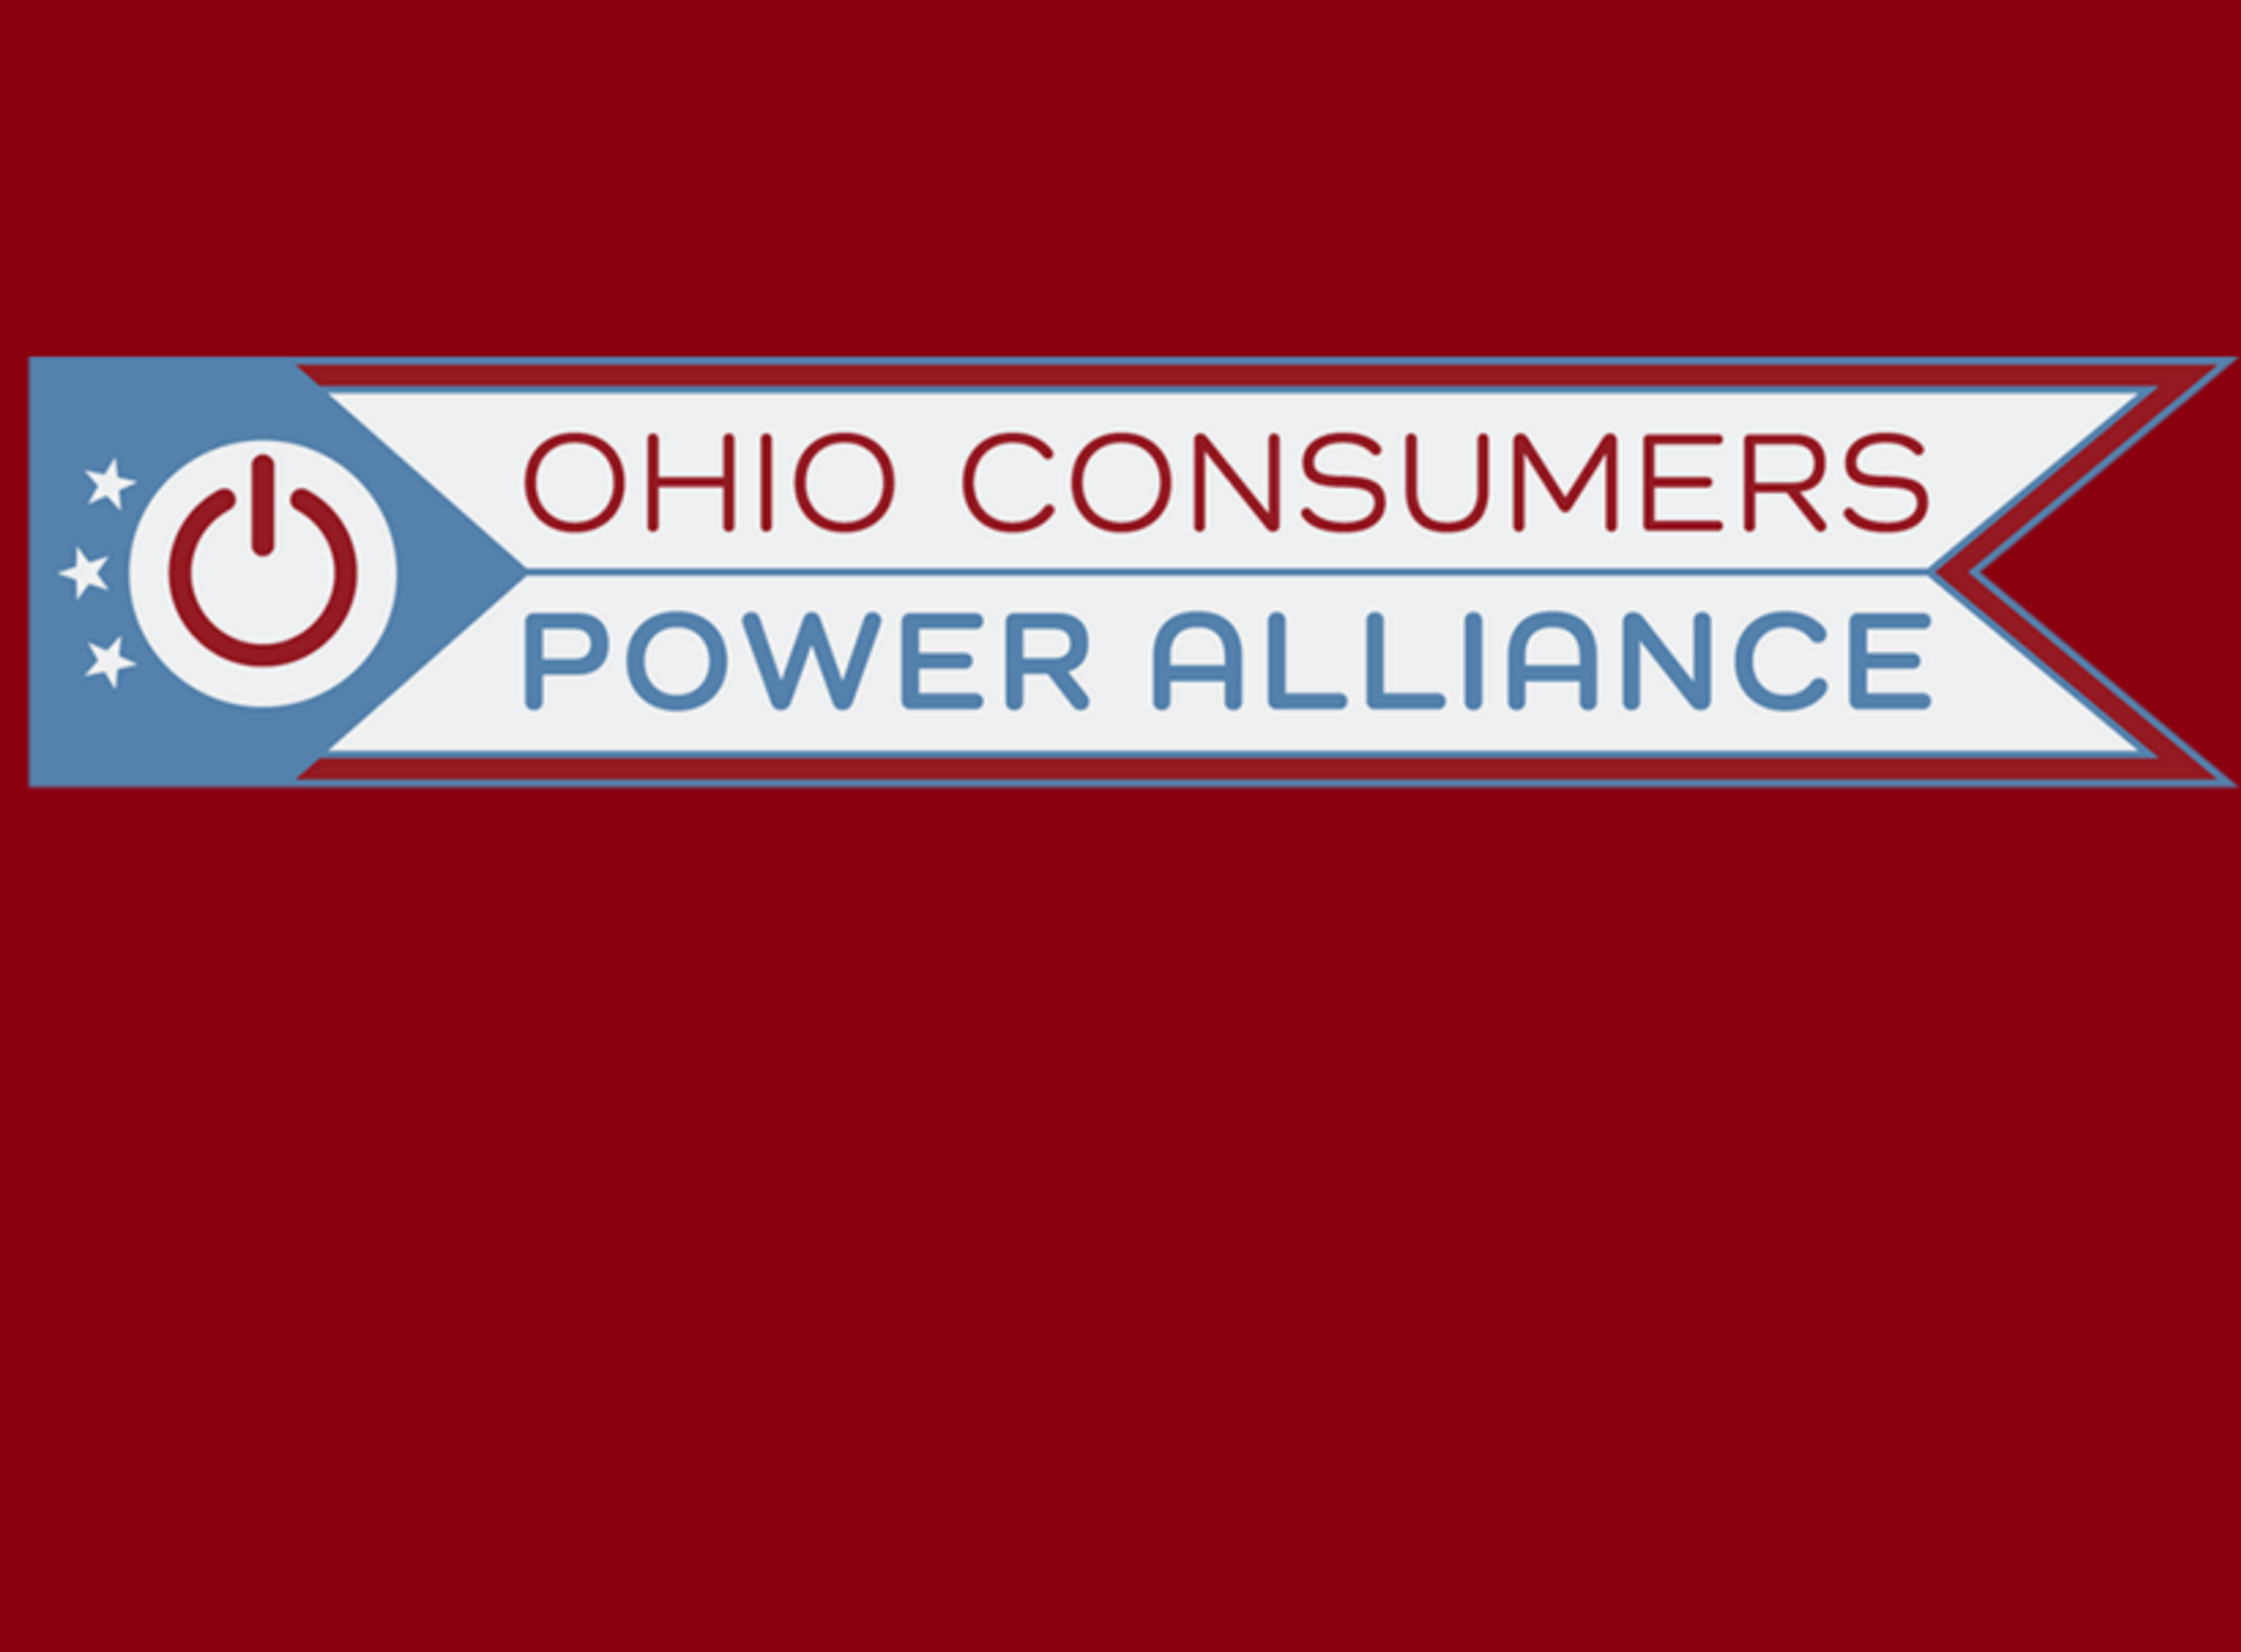 Ohio Consumers Power Alliance